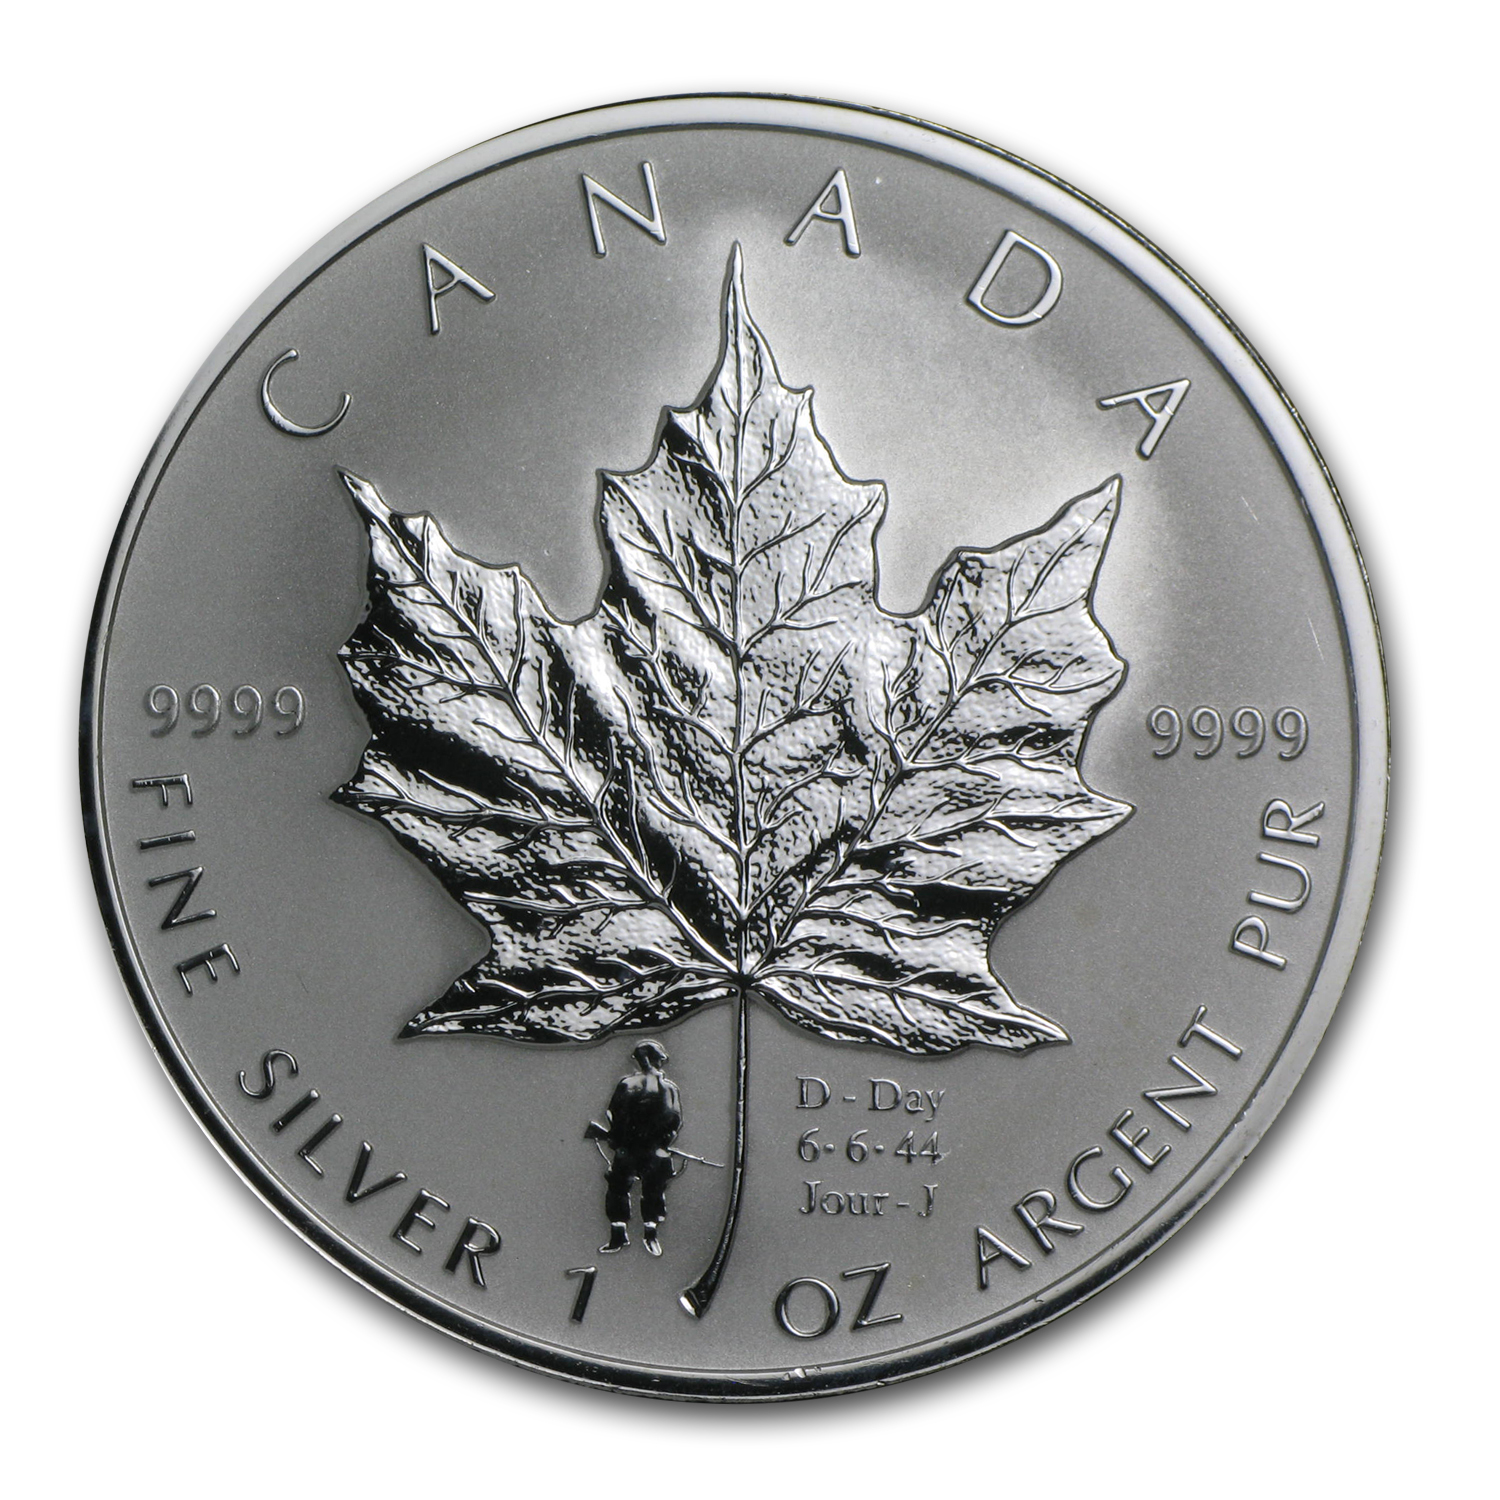 2004 Canada 1 oz Silver Maple Leaf D-Day Privy